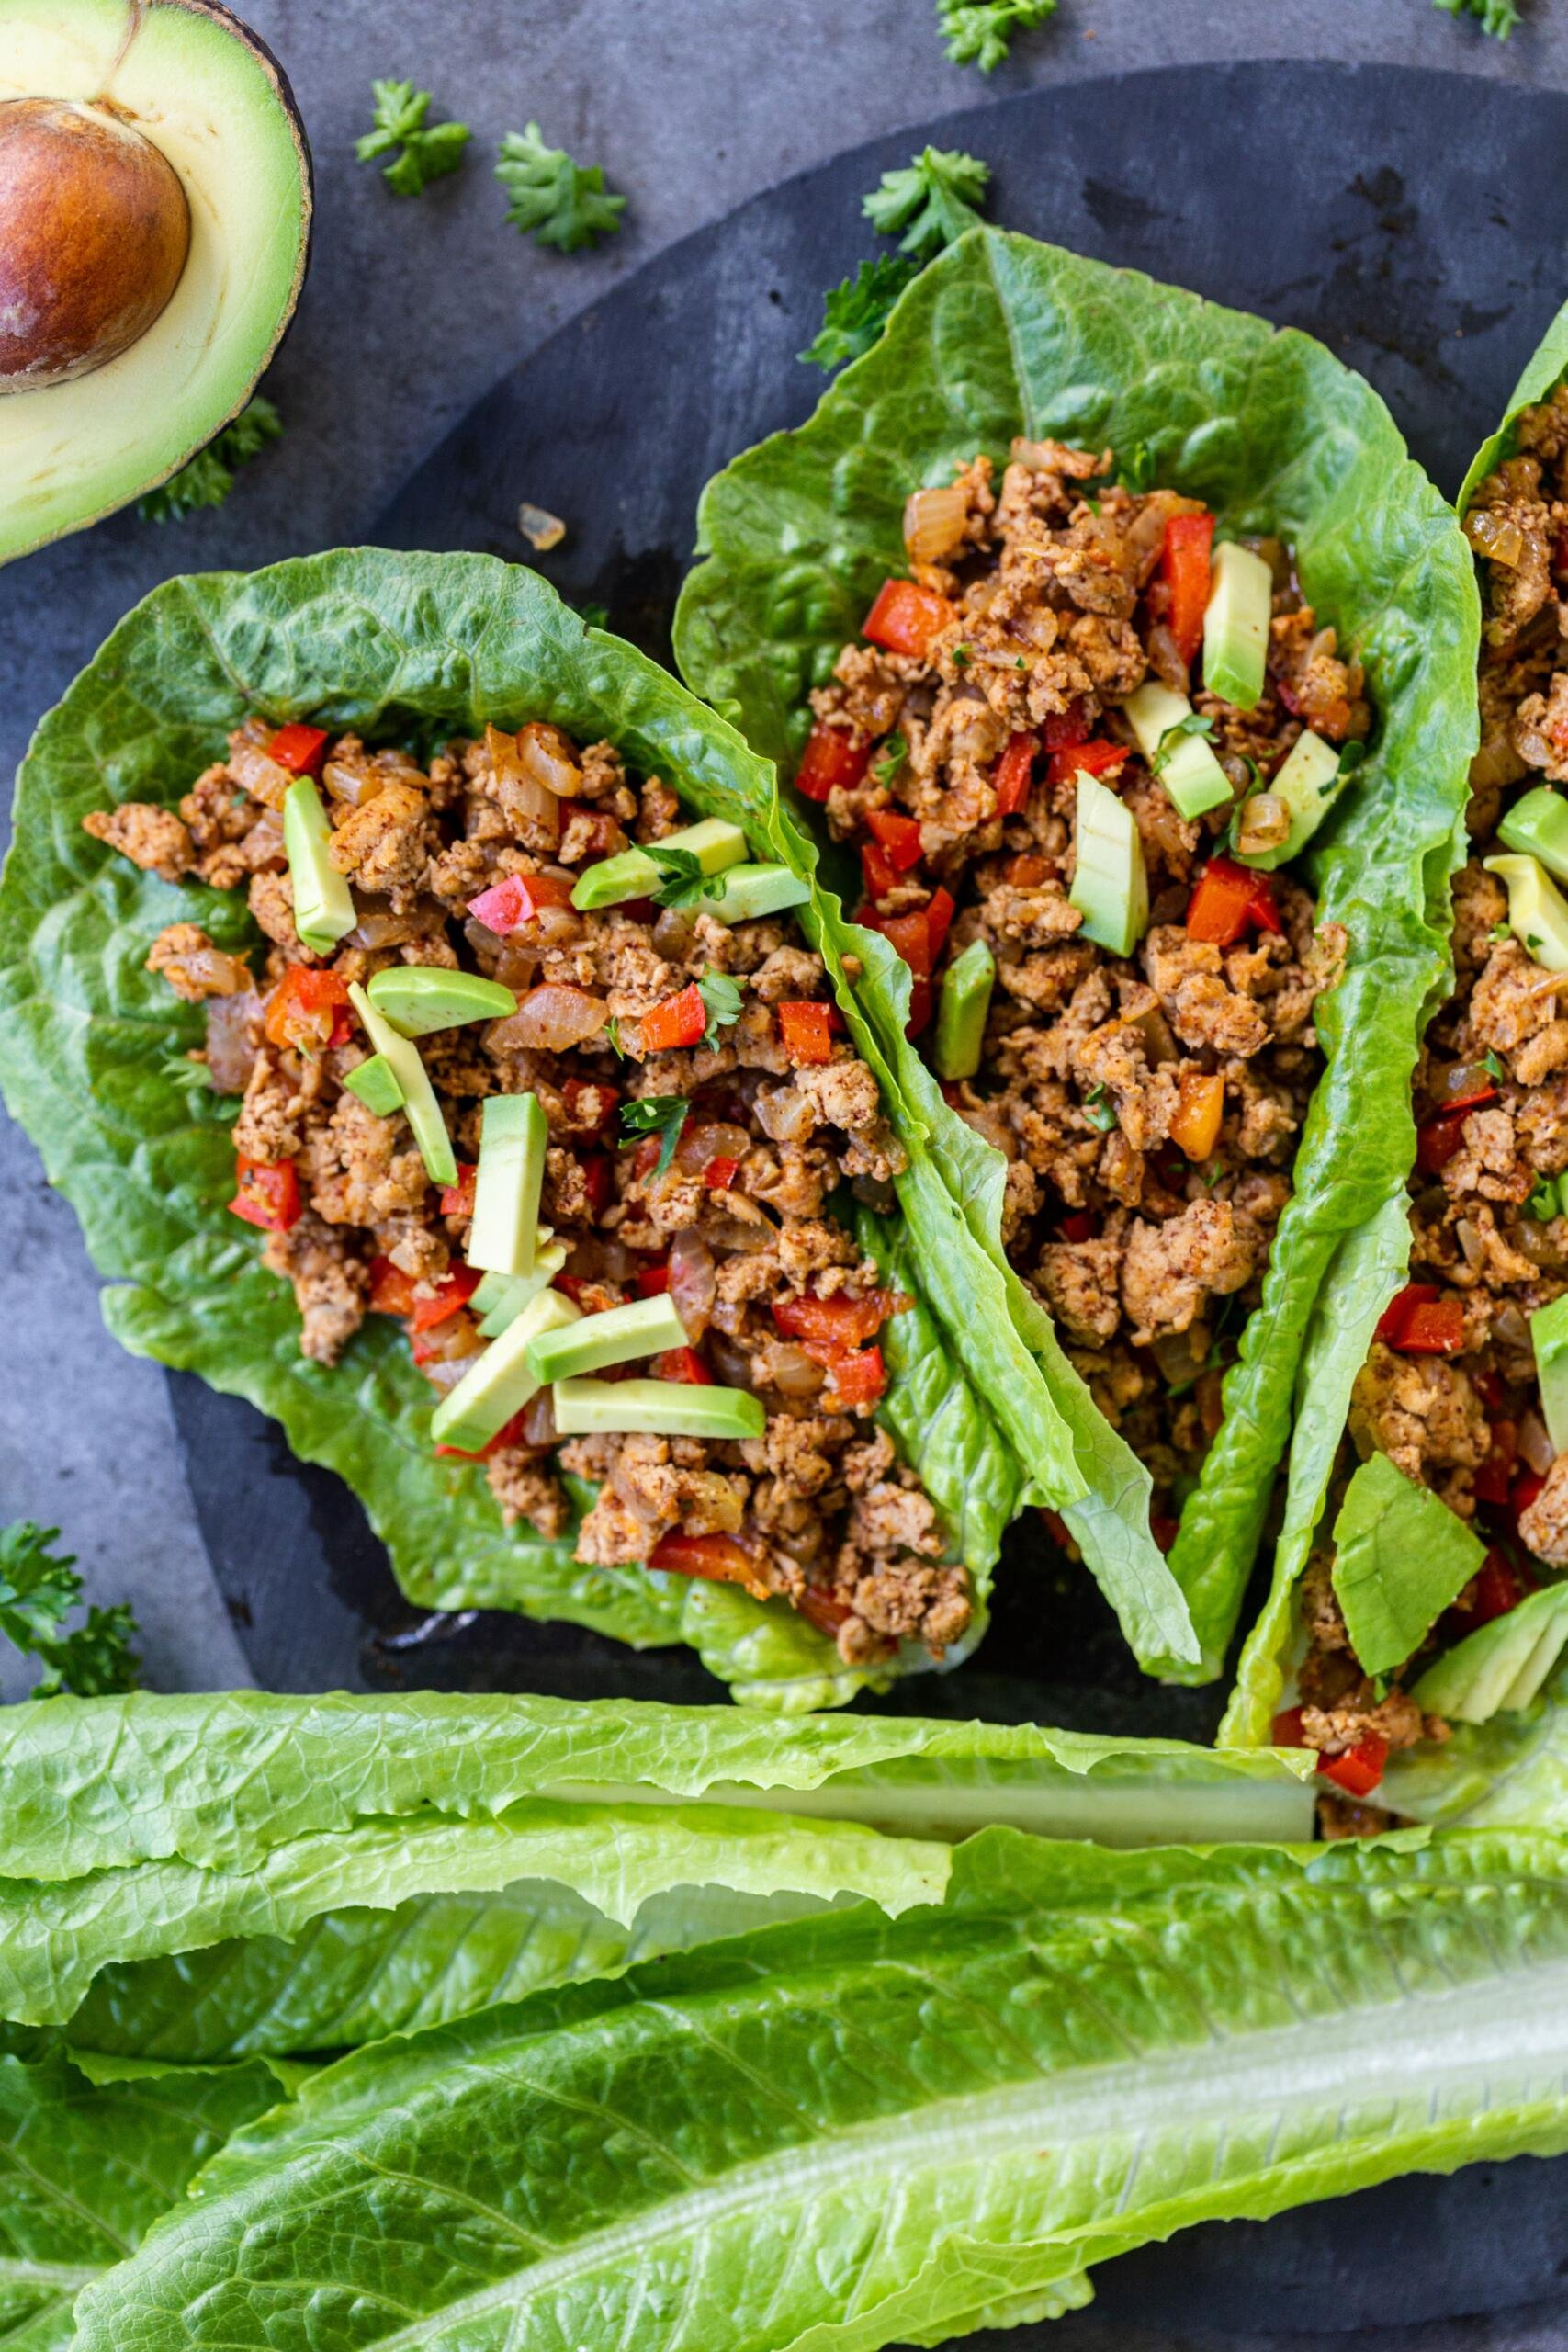 Lettuce wraps with turkey